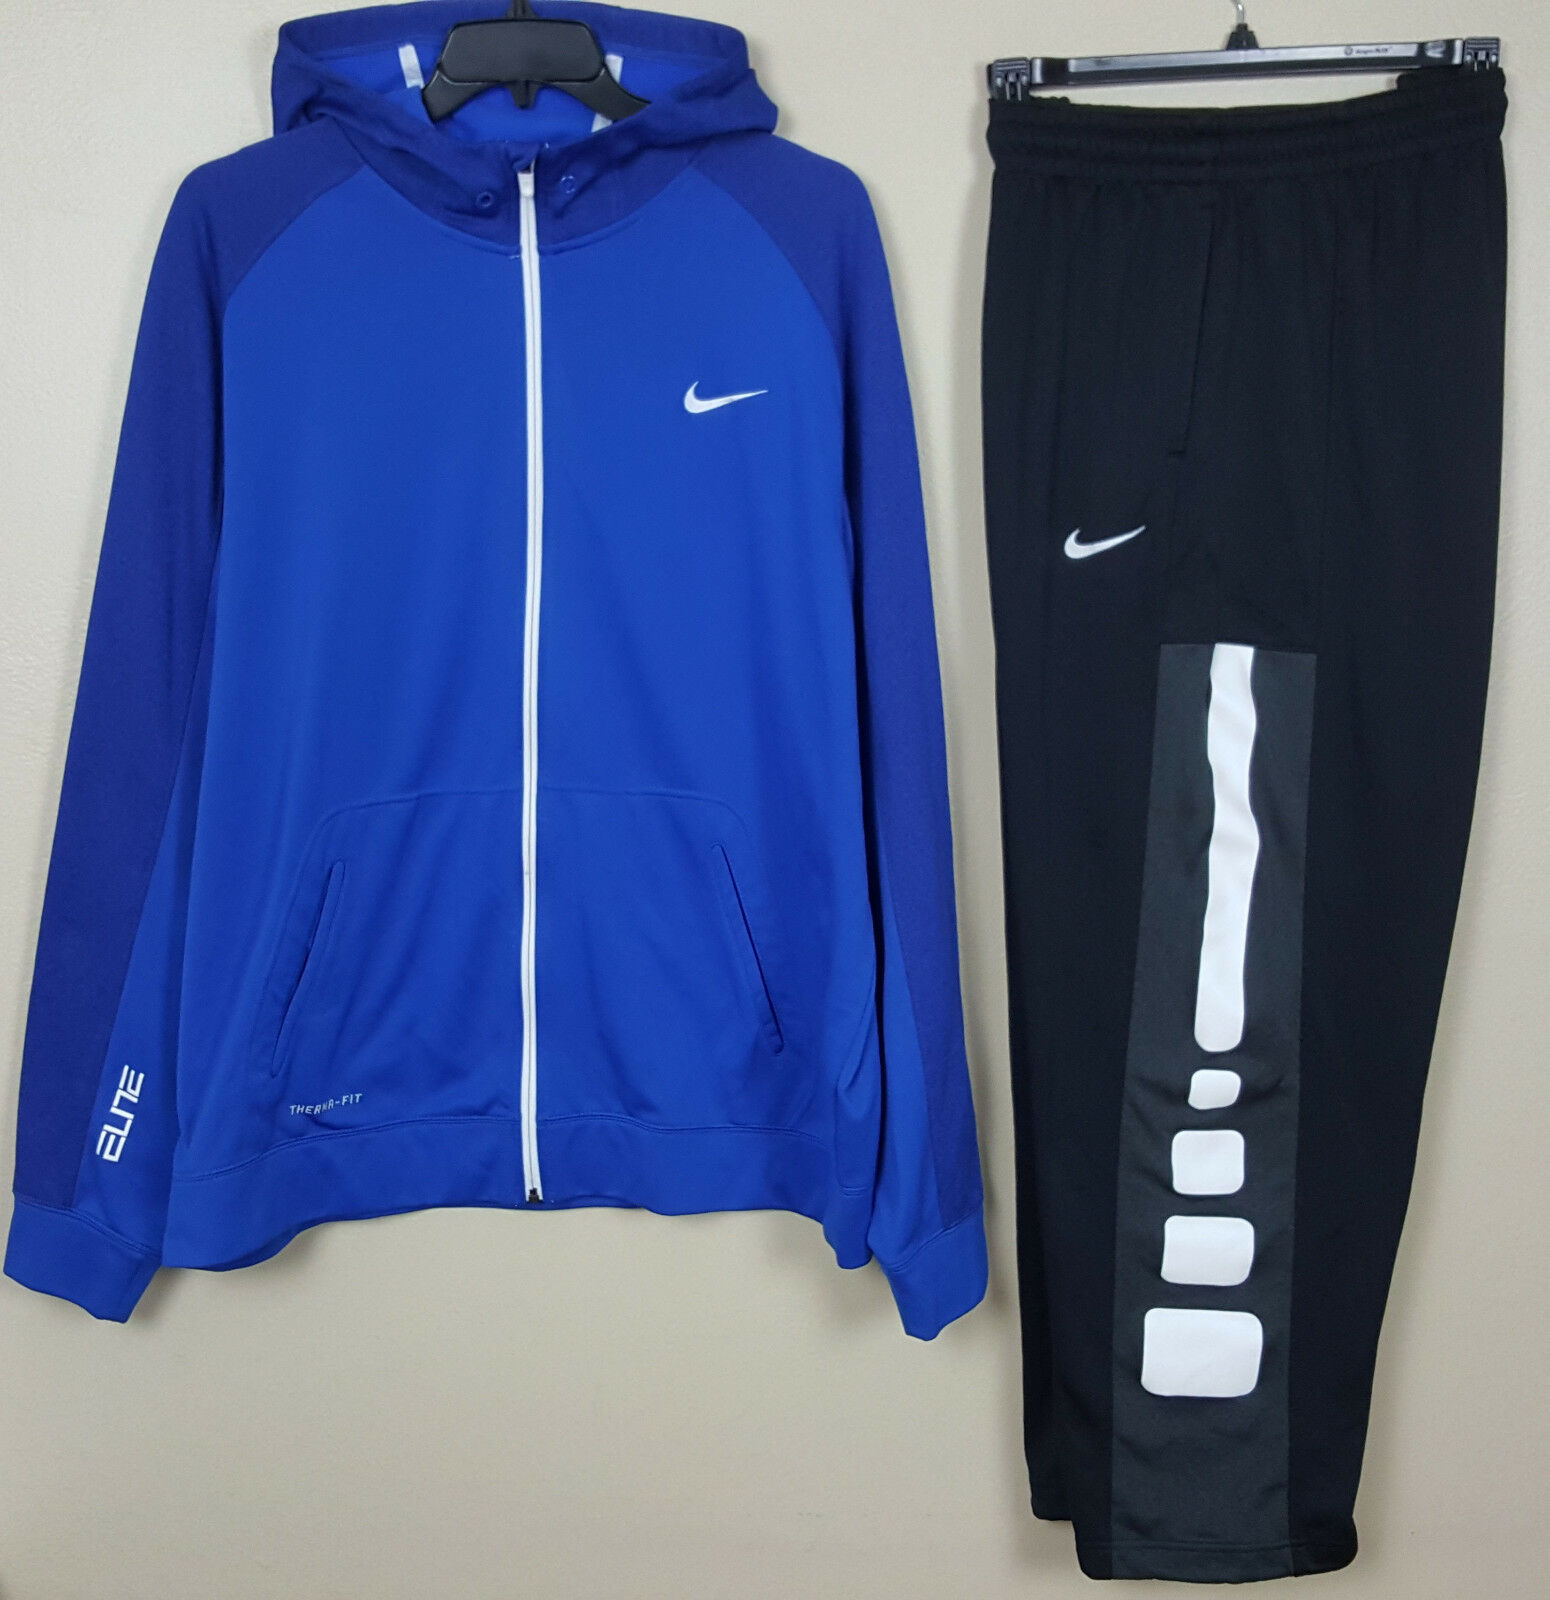 NIKE ELITE BASKETBALL SUIT HOODIE + PANTS ROYAL blueE BLACK WHITE RARE (SIZE 3XL)